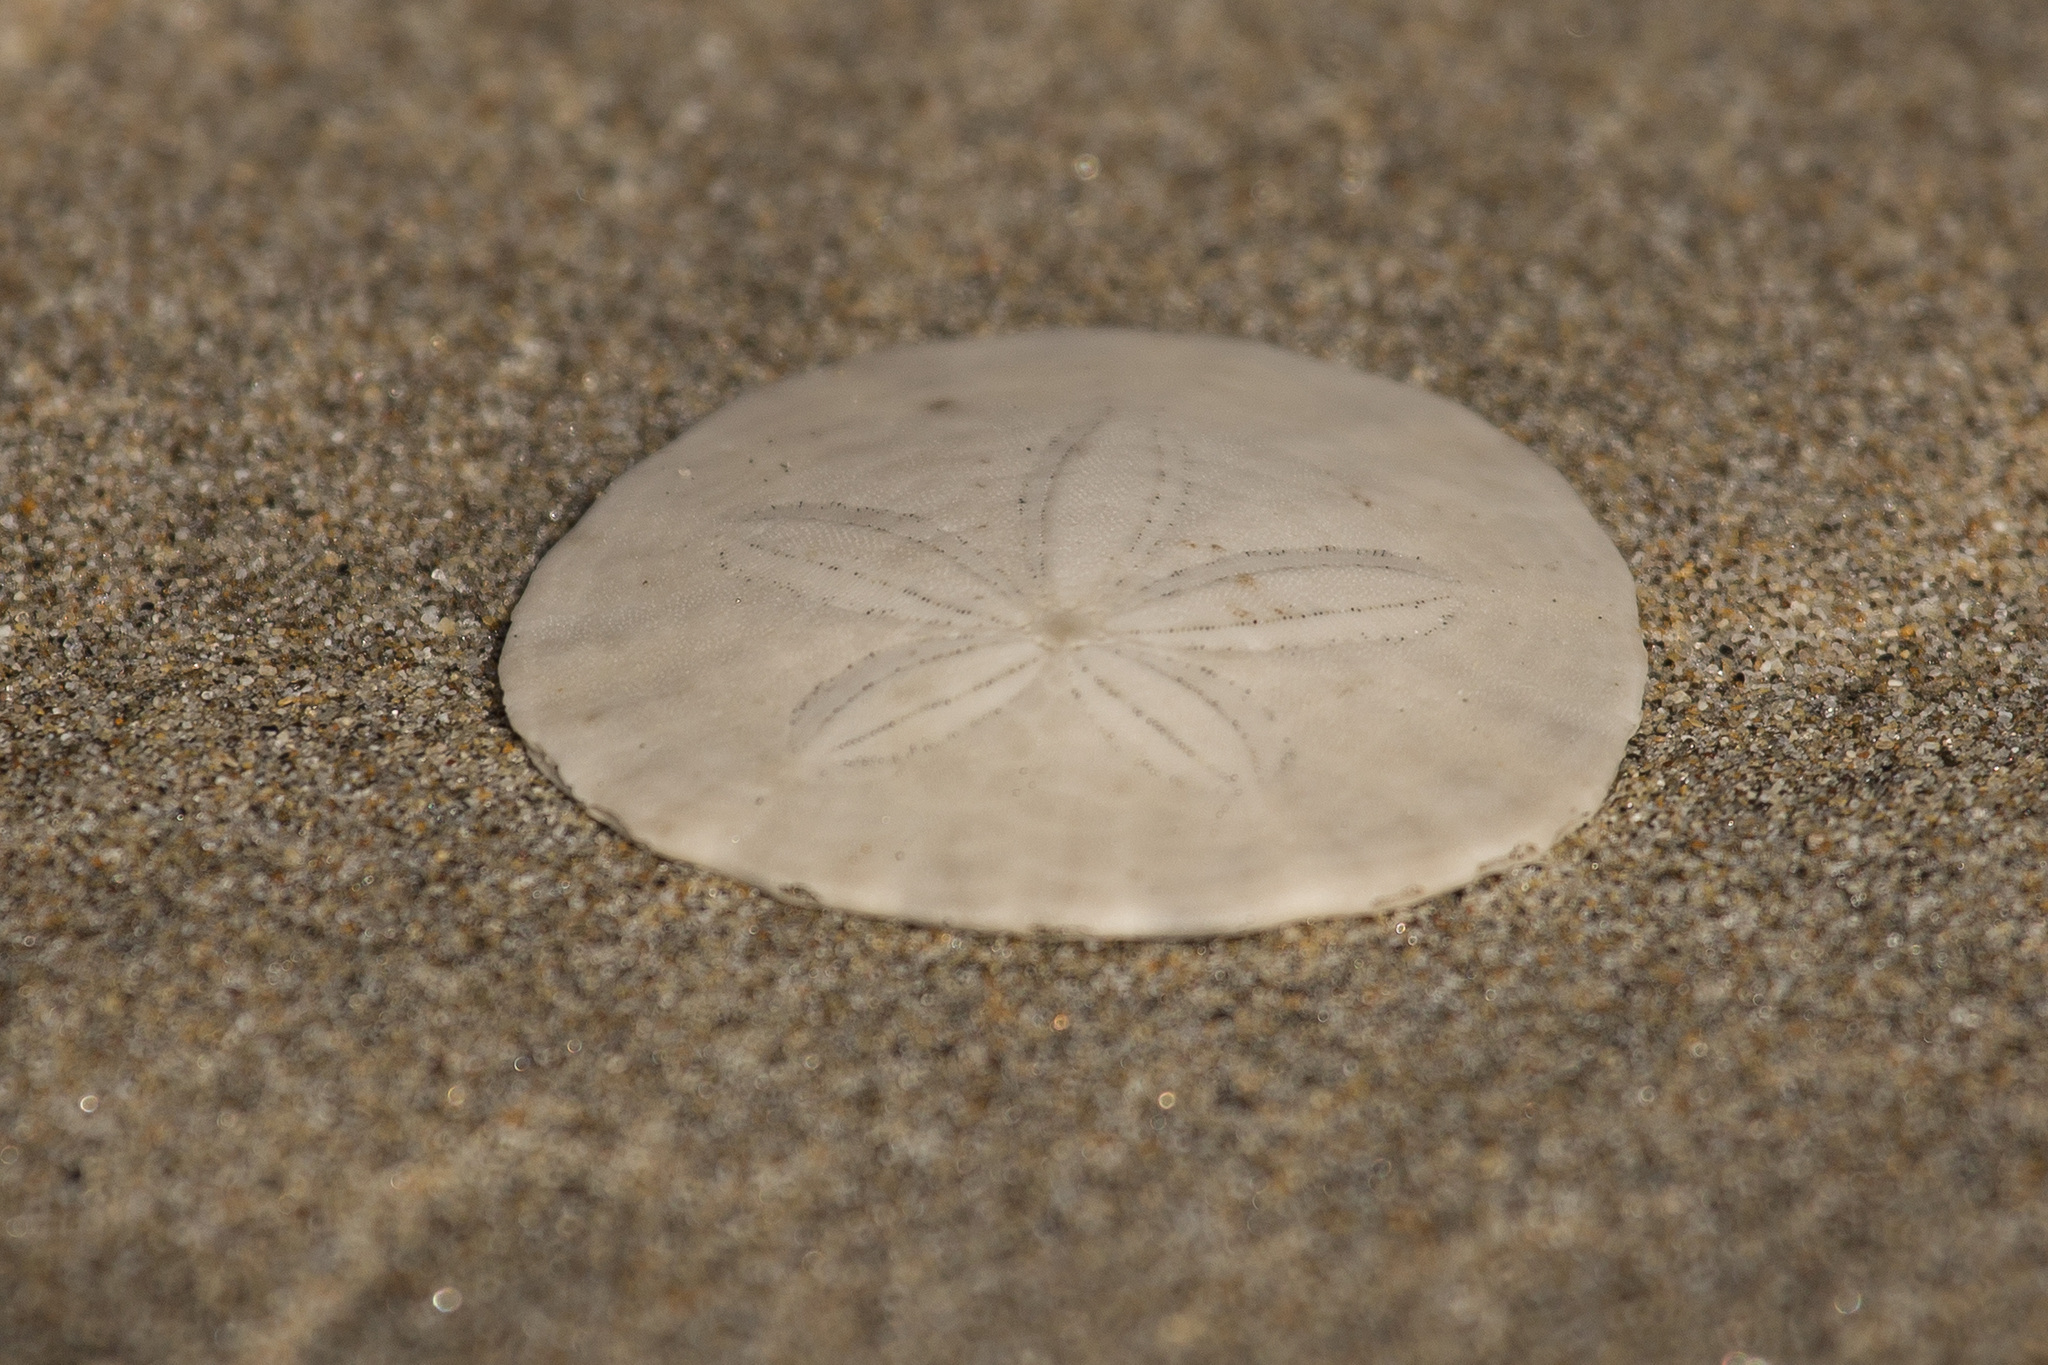 Image of eccentric sand dollar sea urchin